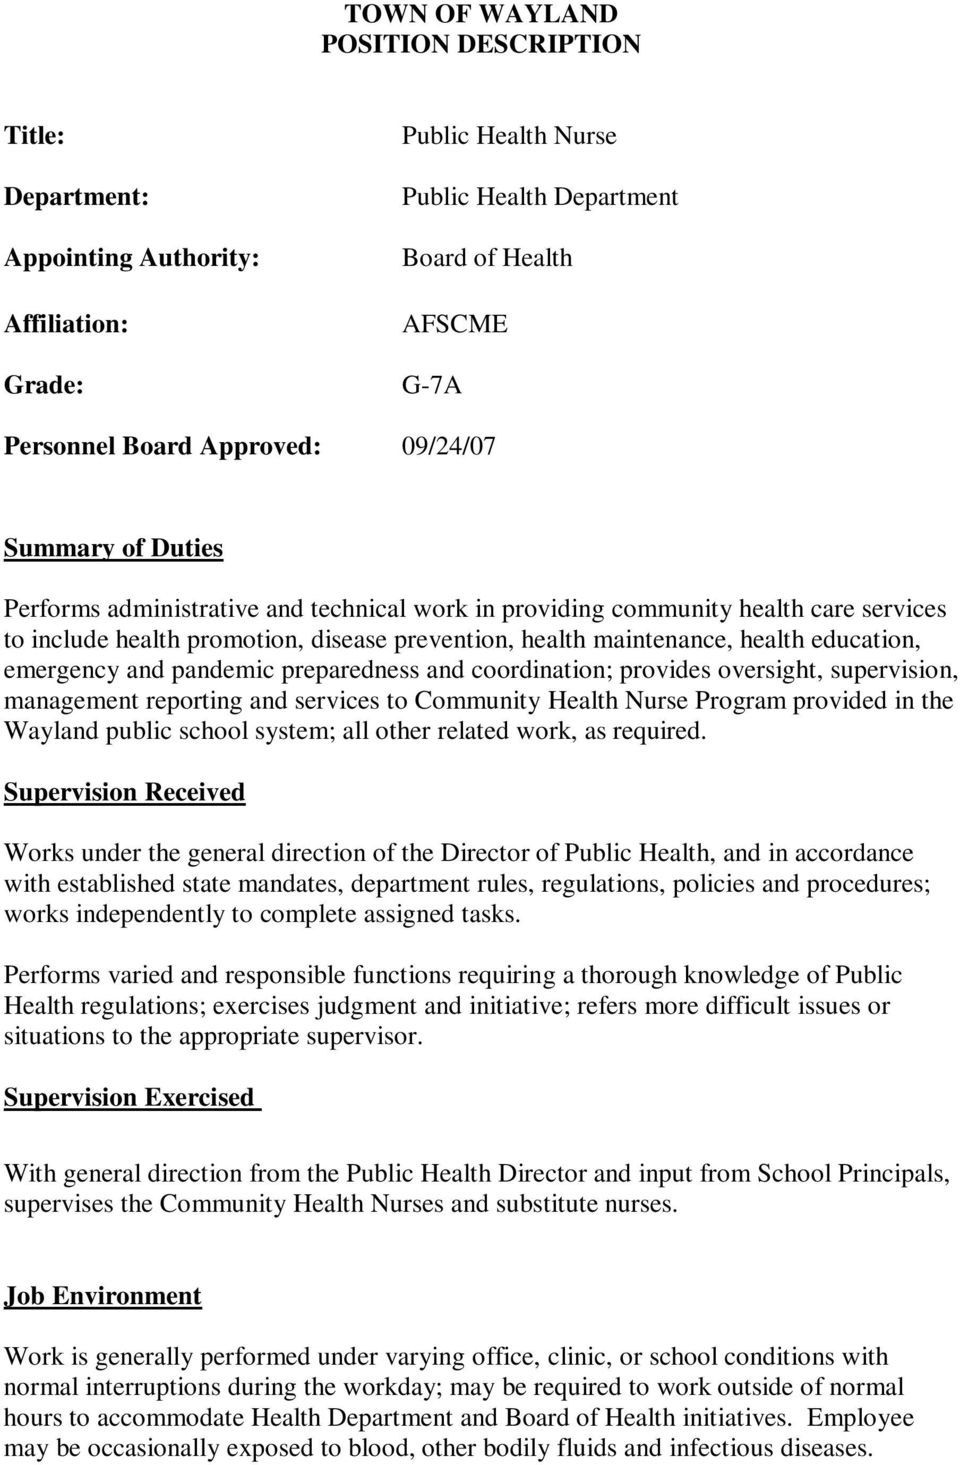 education, emergency and pandemic preparedness and coordination; provides oversight, supervision, management reporting and services to Community Health Nurse Program provided in the Wayland public